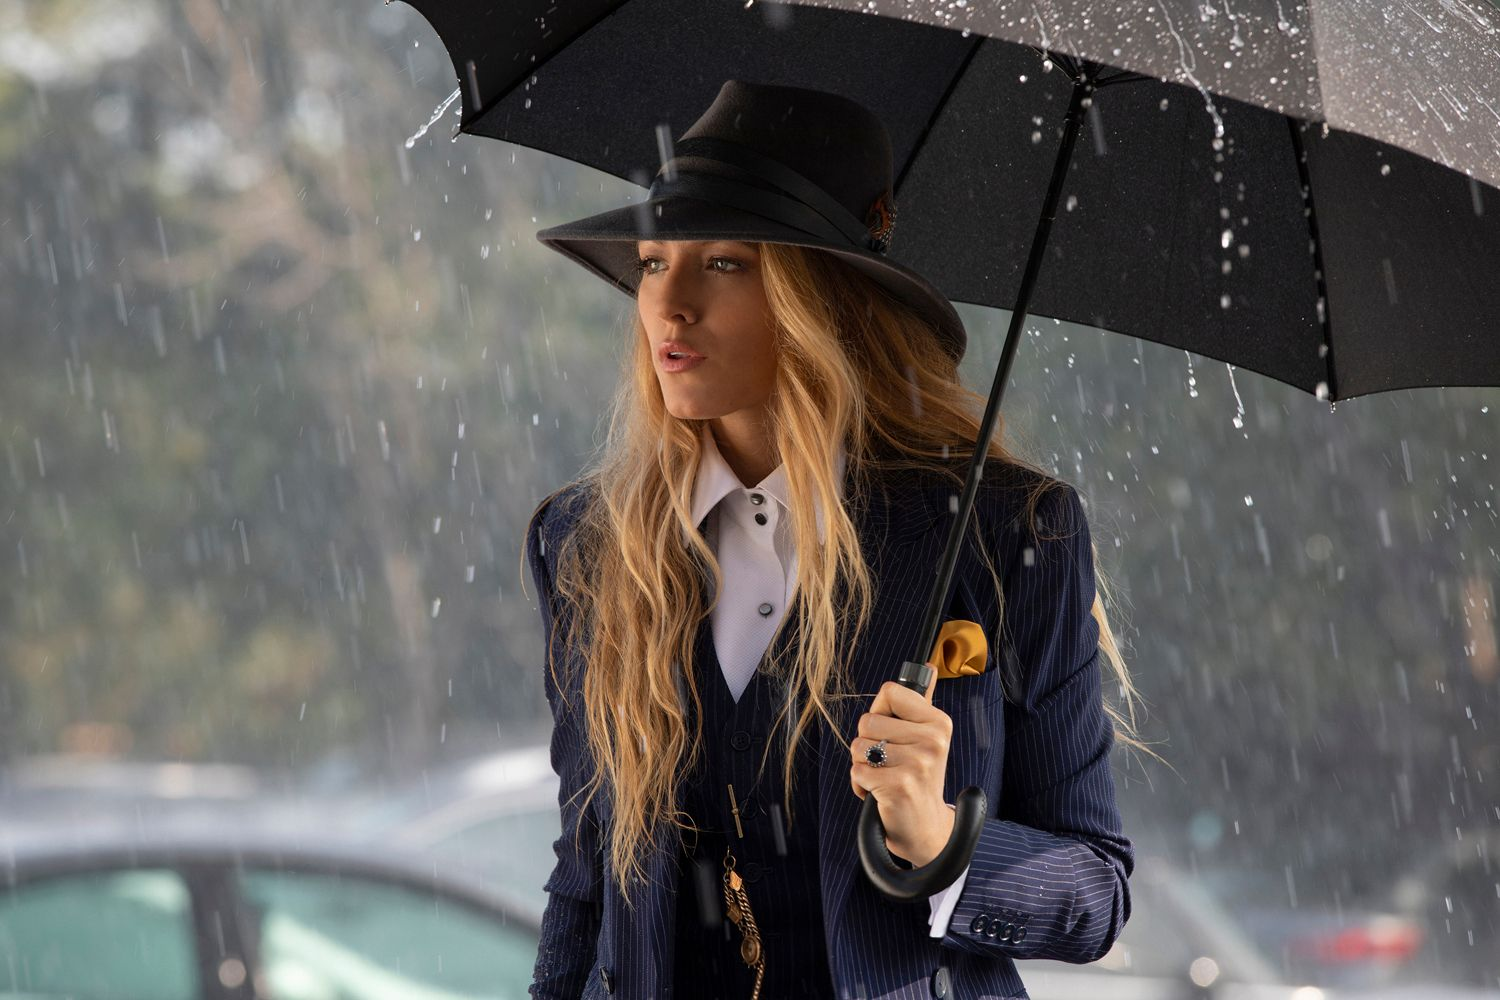 a simple favor - photo #10